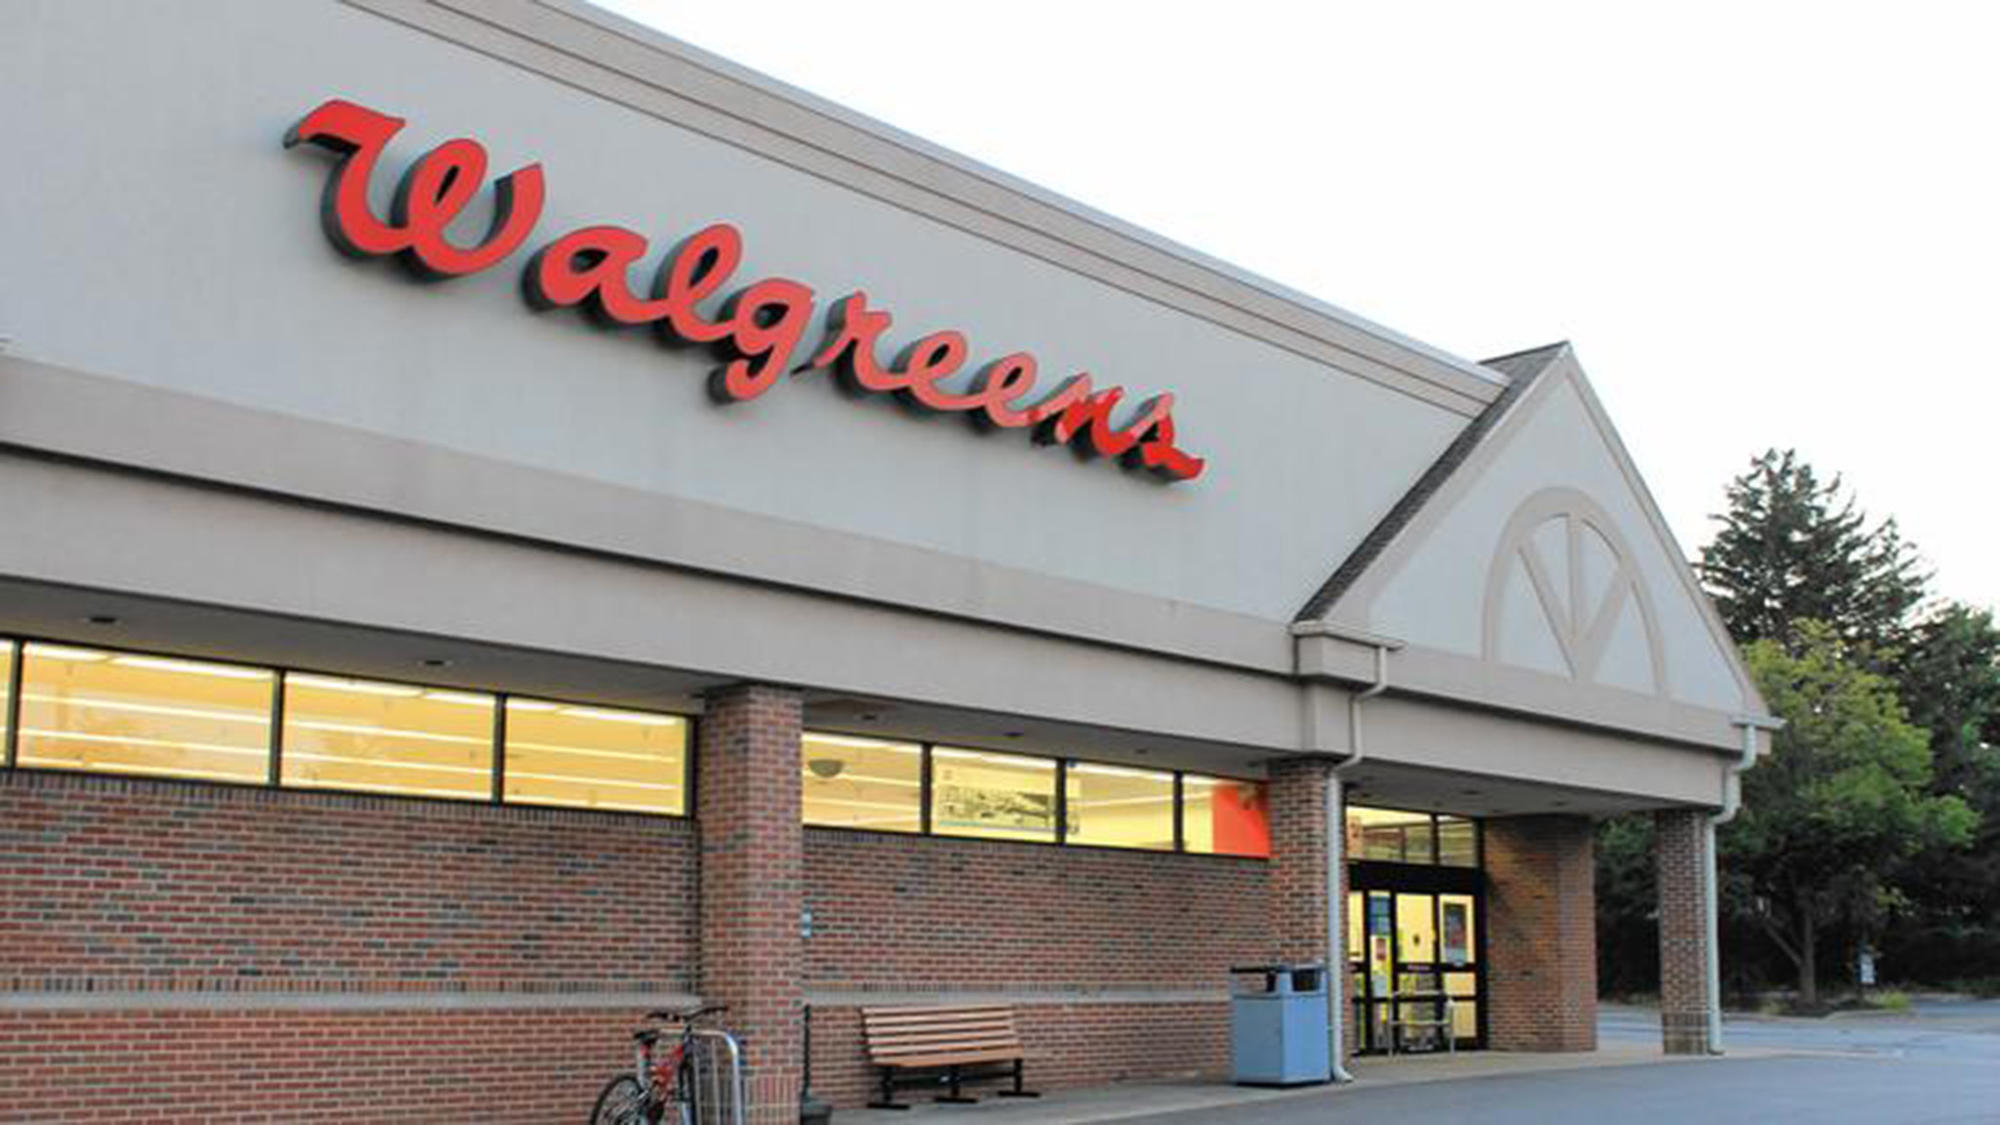 Walgreens cuts manager bonuses following employee benefit changes - Chicago Tribune